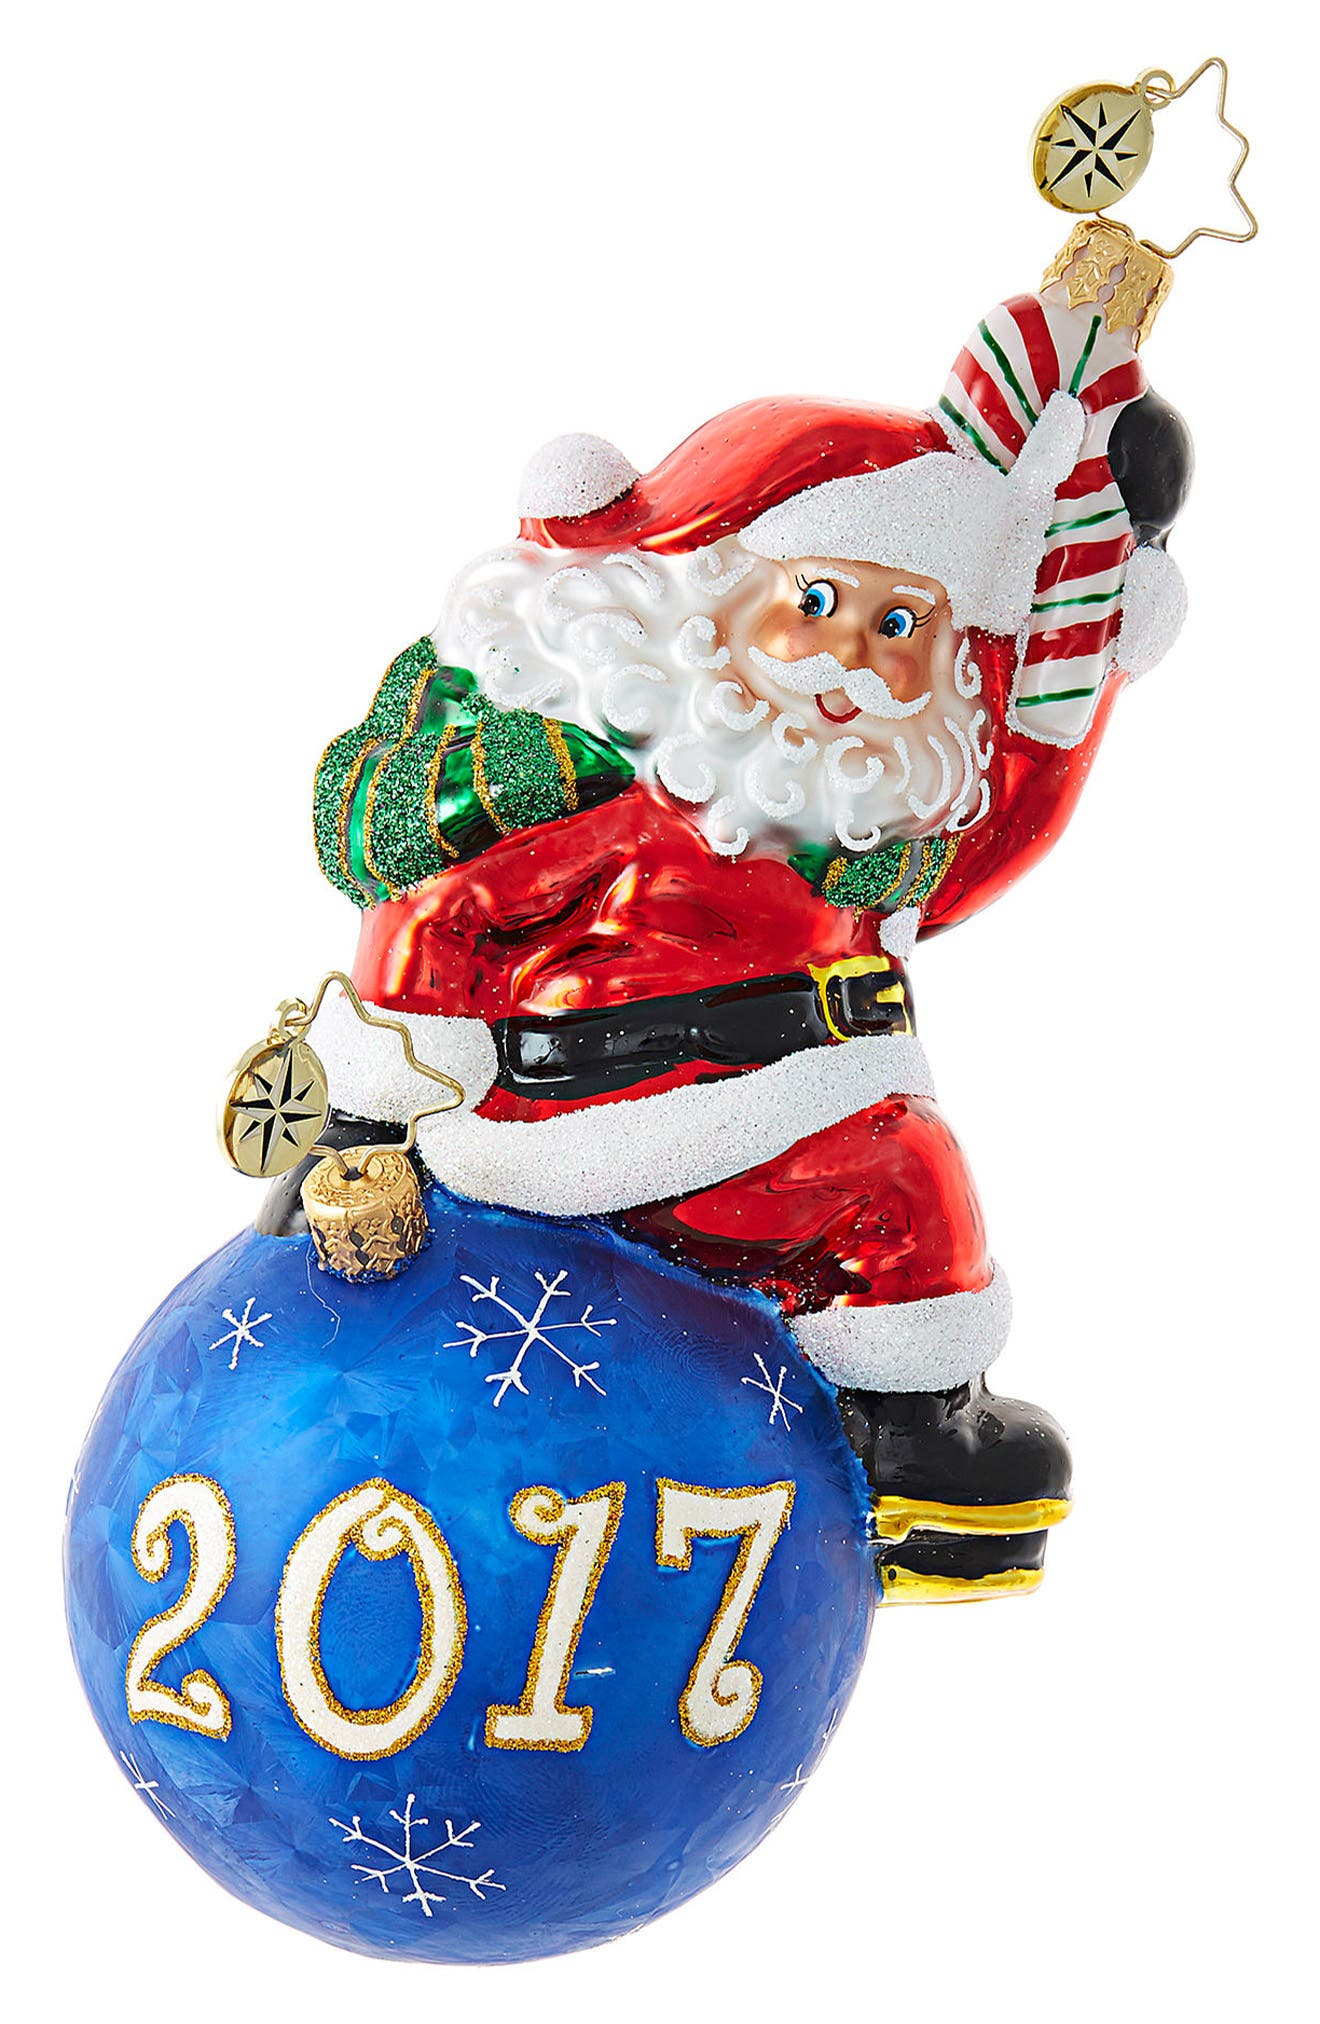 Main Image - Christopher Radko Having a Ball 2017 Santa Claus Ornament